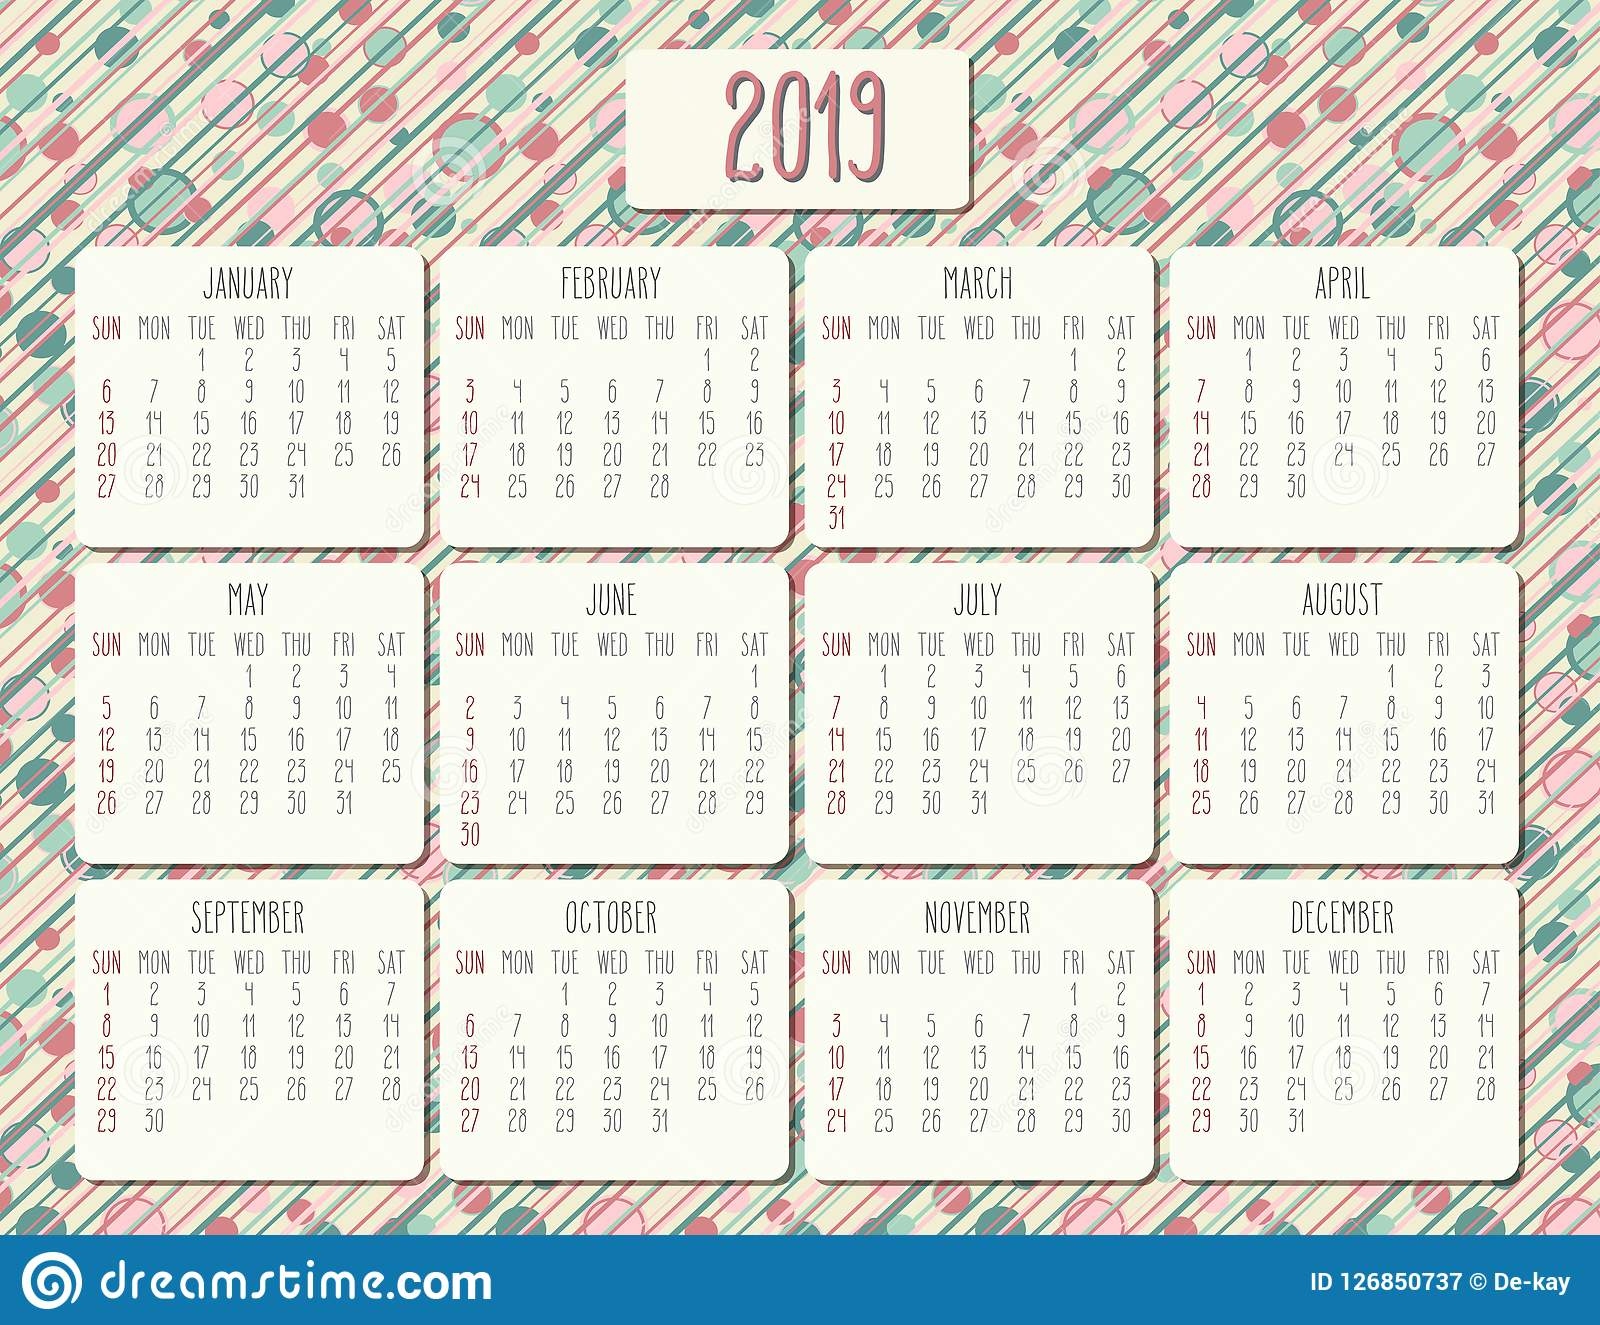 Funky Calendar February 2019 Year 2019 monthly calendar stock vector. Illustration of schedule